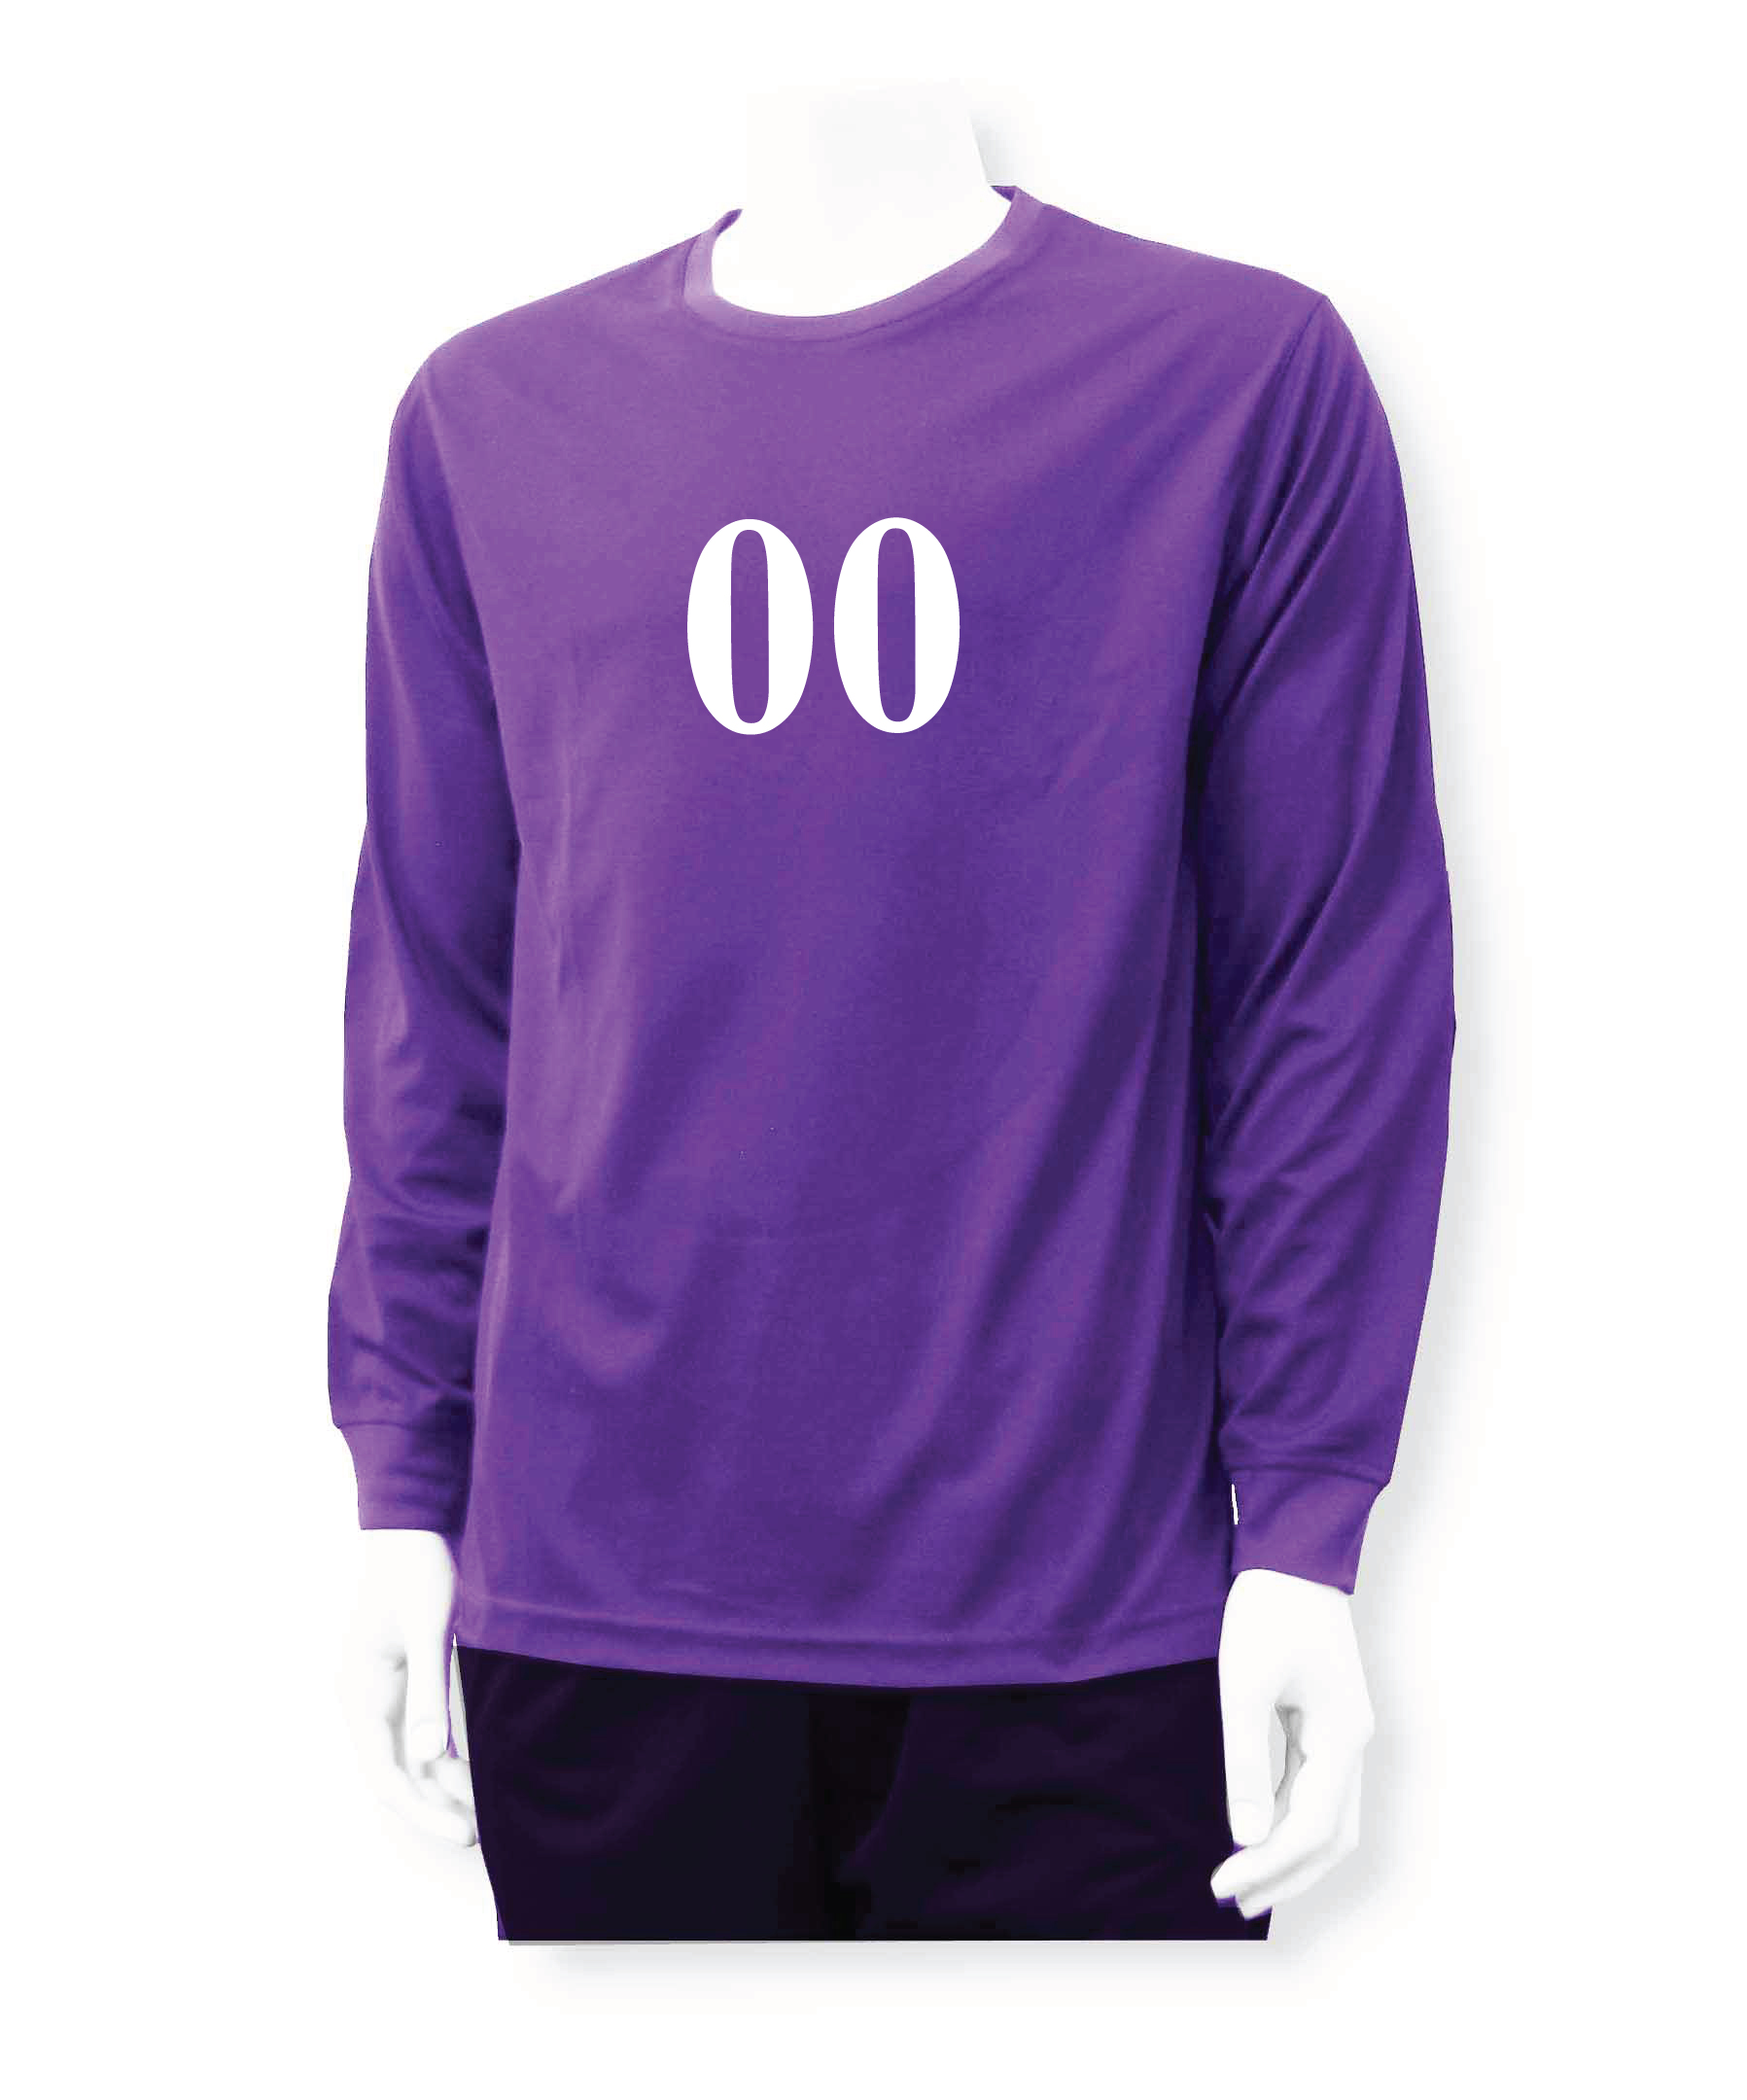 Long sleeve soccer goalie jersey, with number, in purple by Code Four Athletics